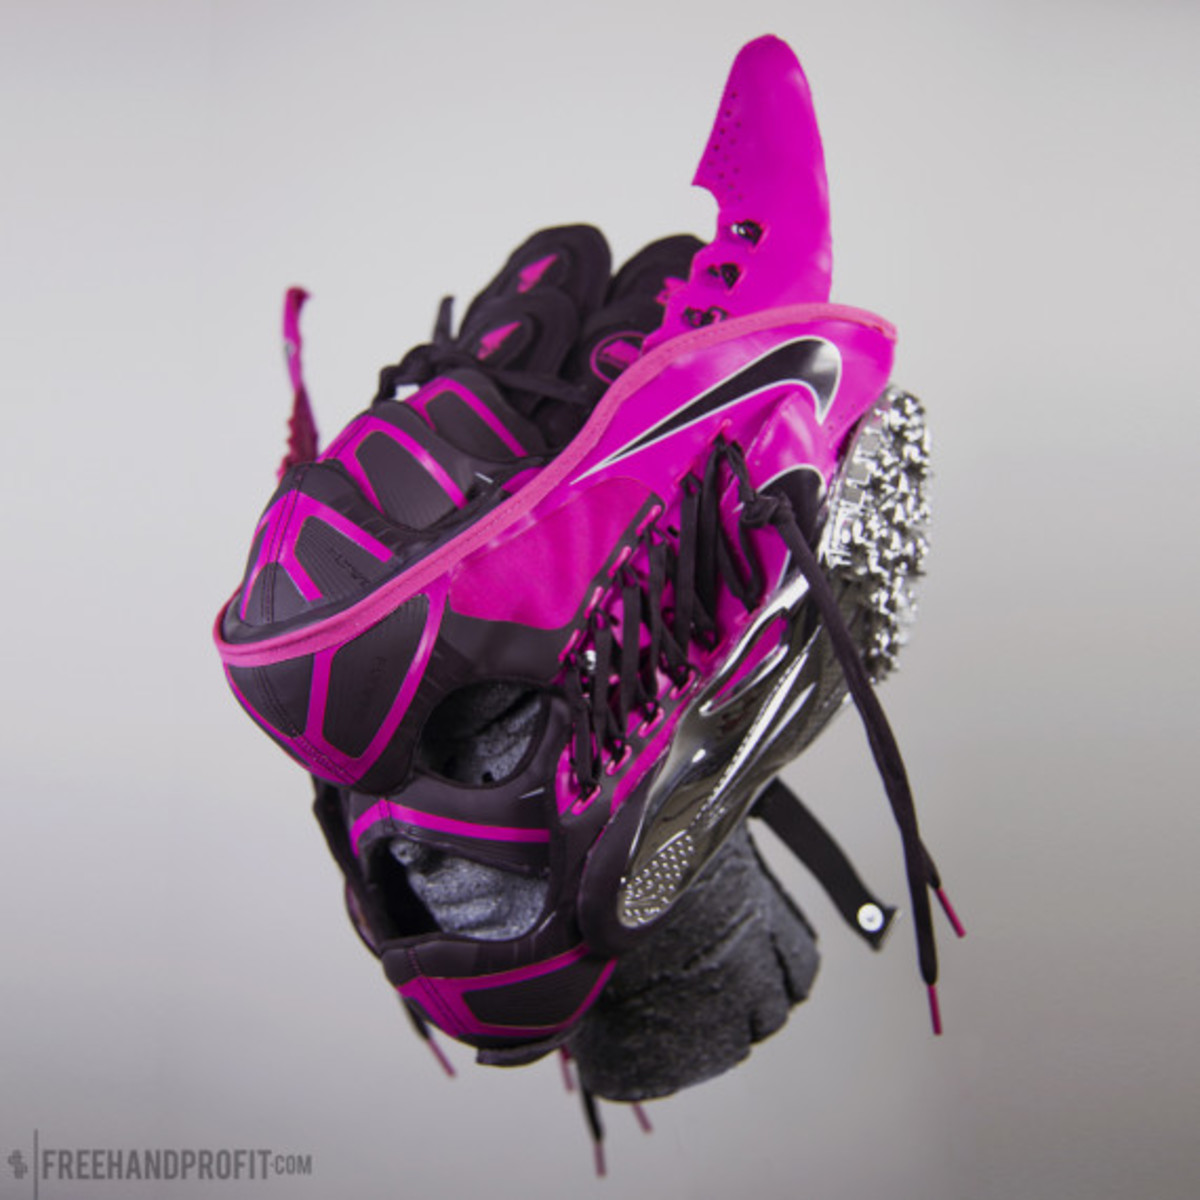 freehand-profit-jet-nike-superfly-r4-track-cleat-mask-08